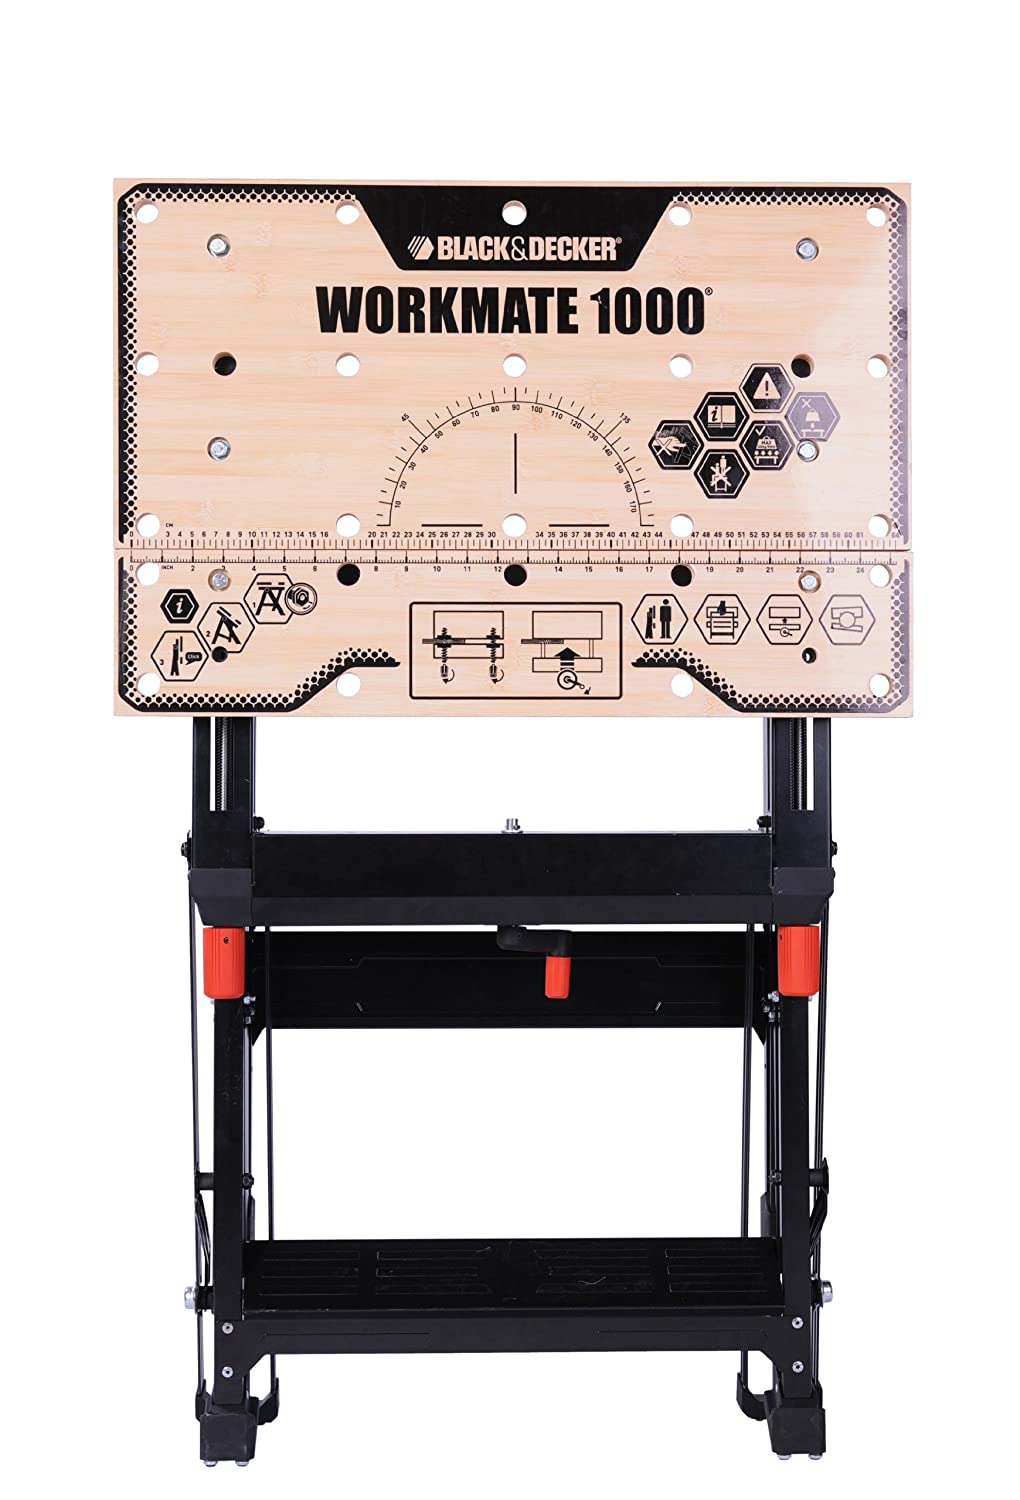 Black and decker workmate 1000 review - Black Decker Workmate 1000 Wm1000 Xj Clamping Table Amazon Co Uk Diy Tools